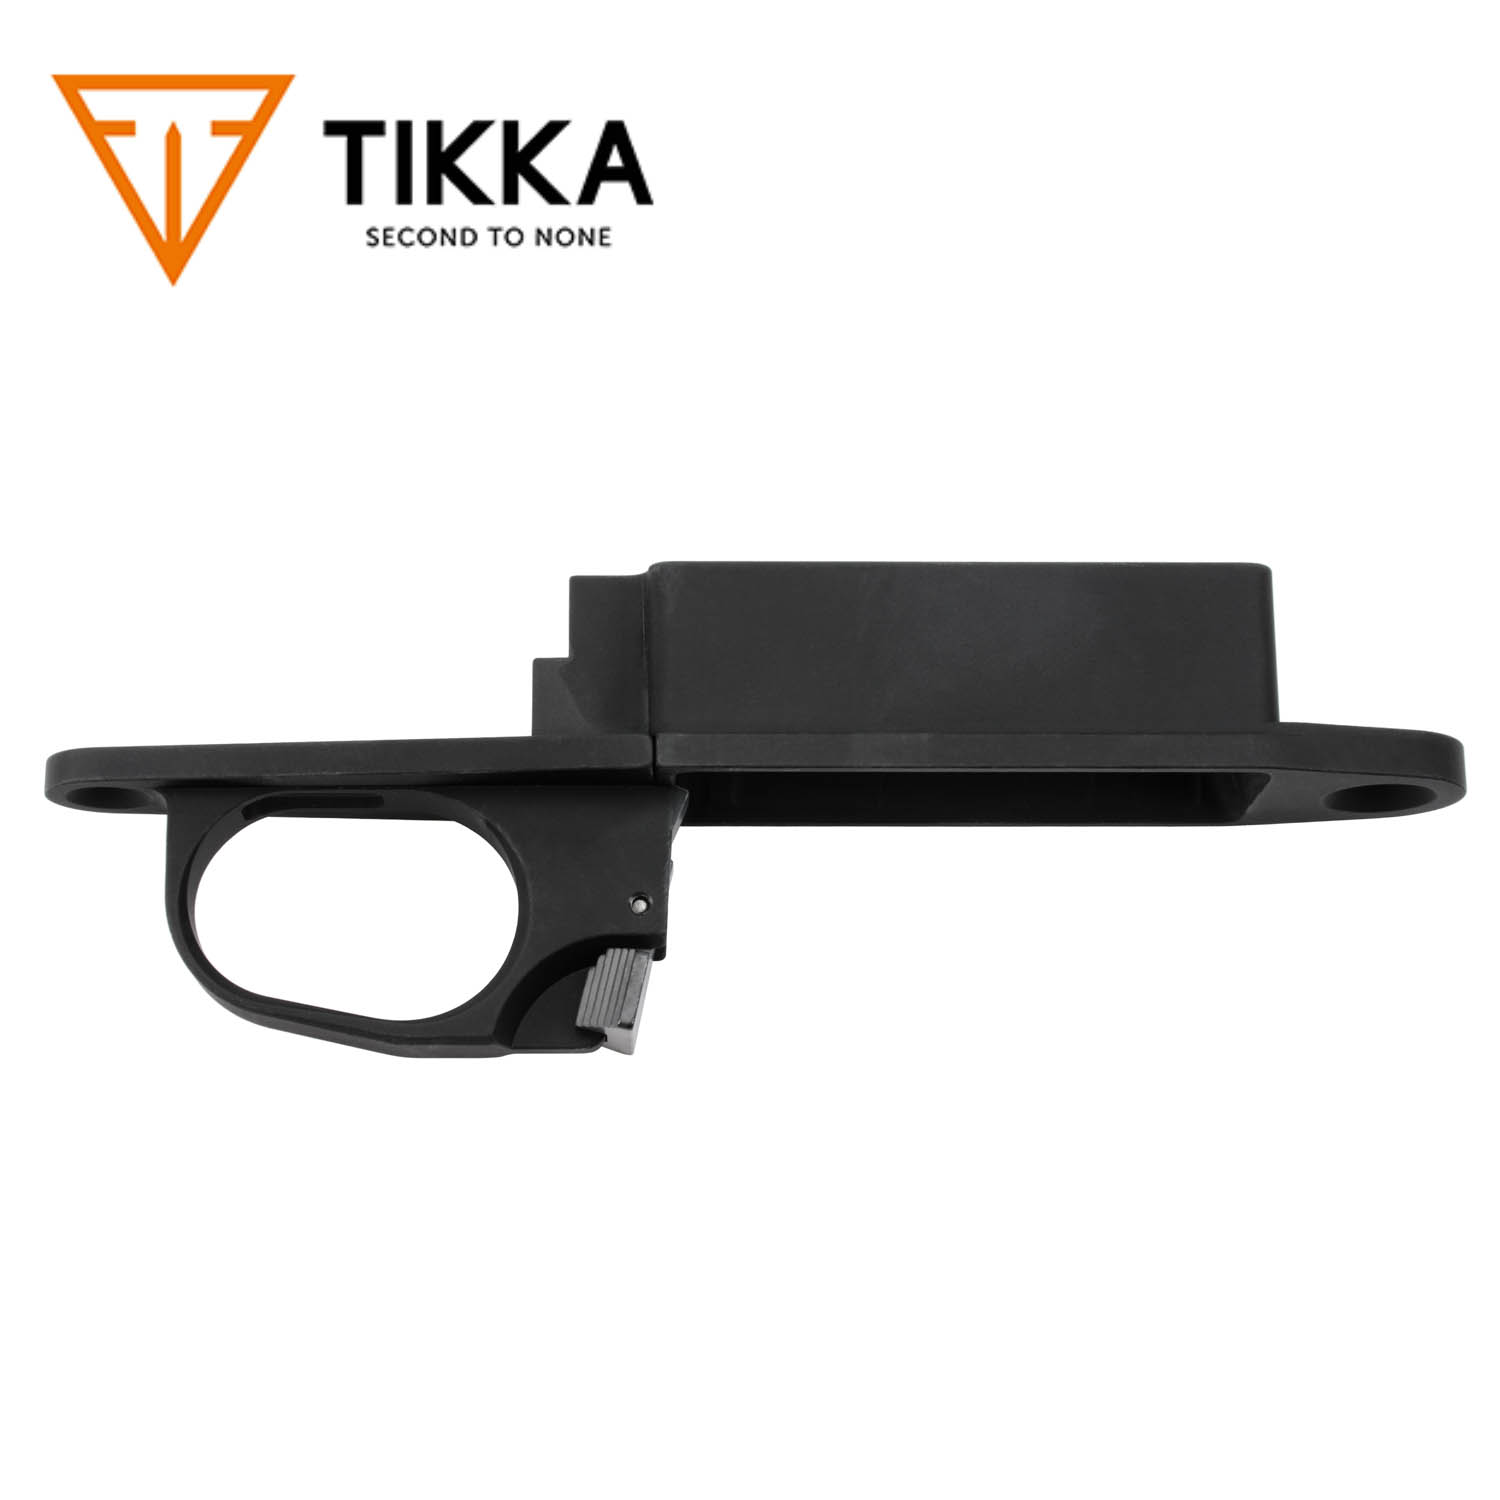 Tikka T3 / T3X CTR Trigger Guard Assembly: Midwest Gun Works